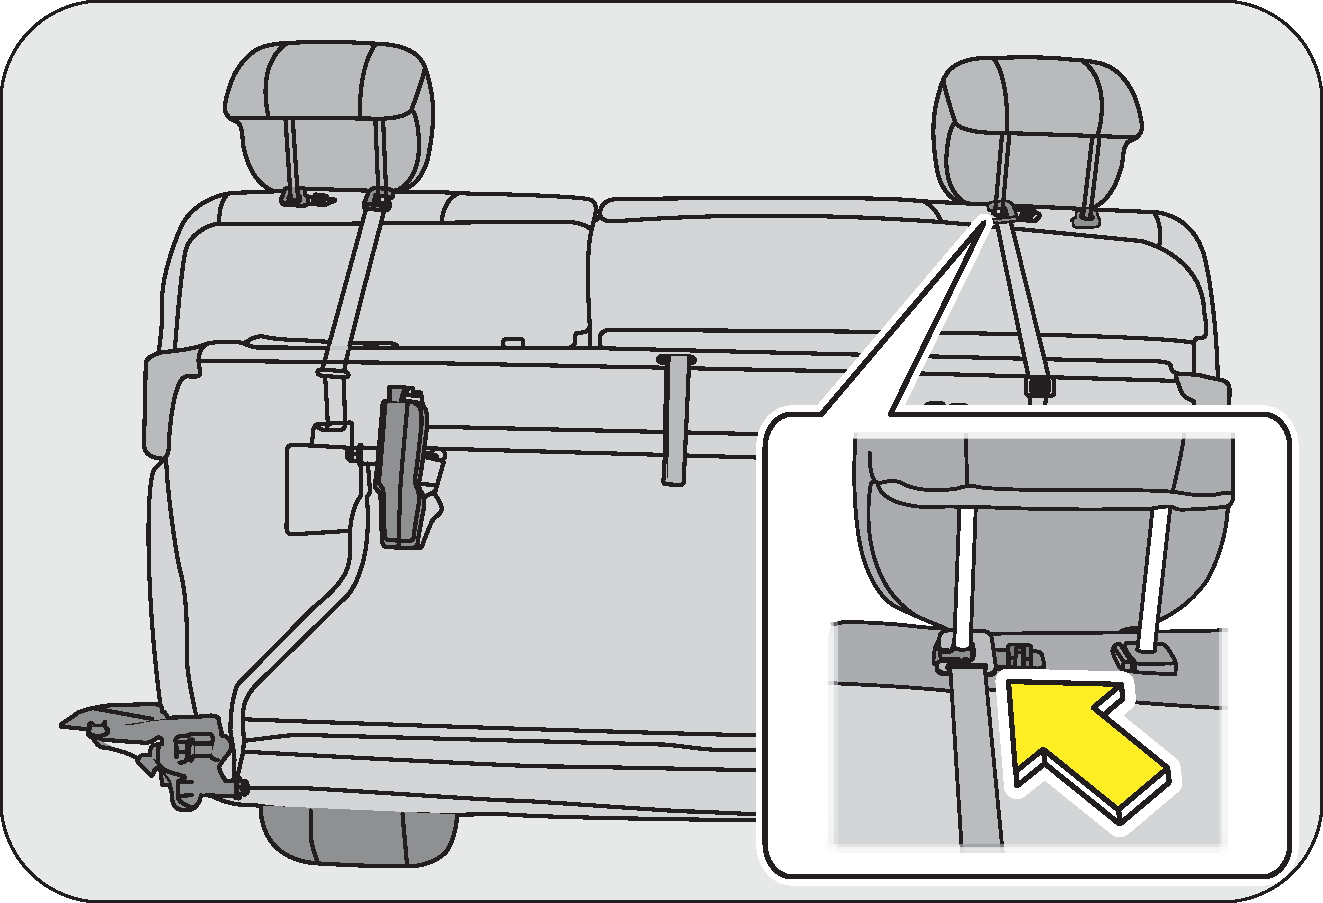 Owners Manual Price Rfid Car Immobilizer Wireless Relay Fuel Pump Circuit Cut Off This Seat Is A Bench With Double Folding Option To Fold The Unlock Back By Pulling Strap From Rear Lift